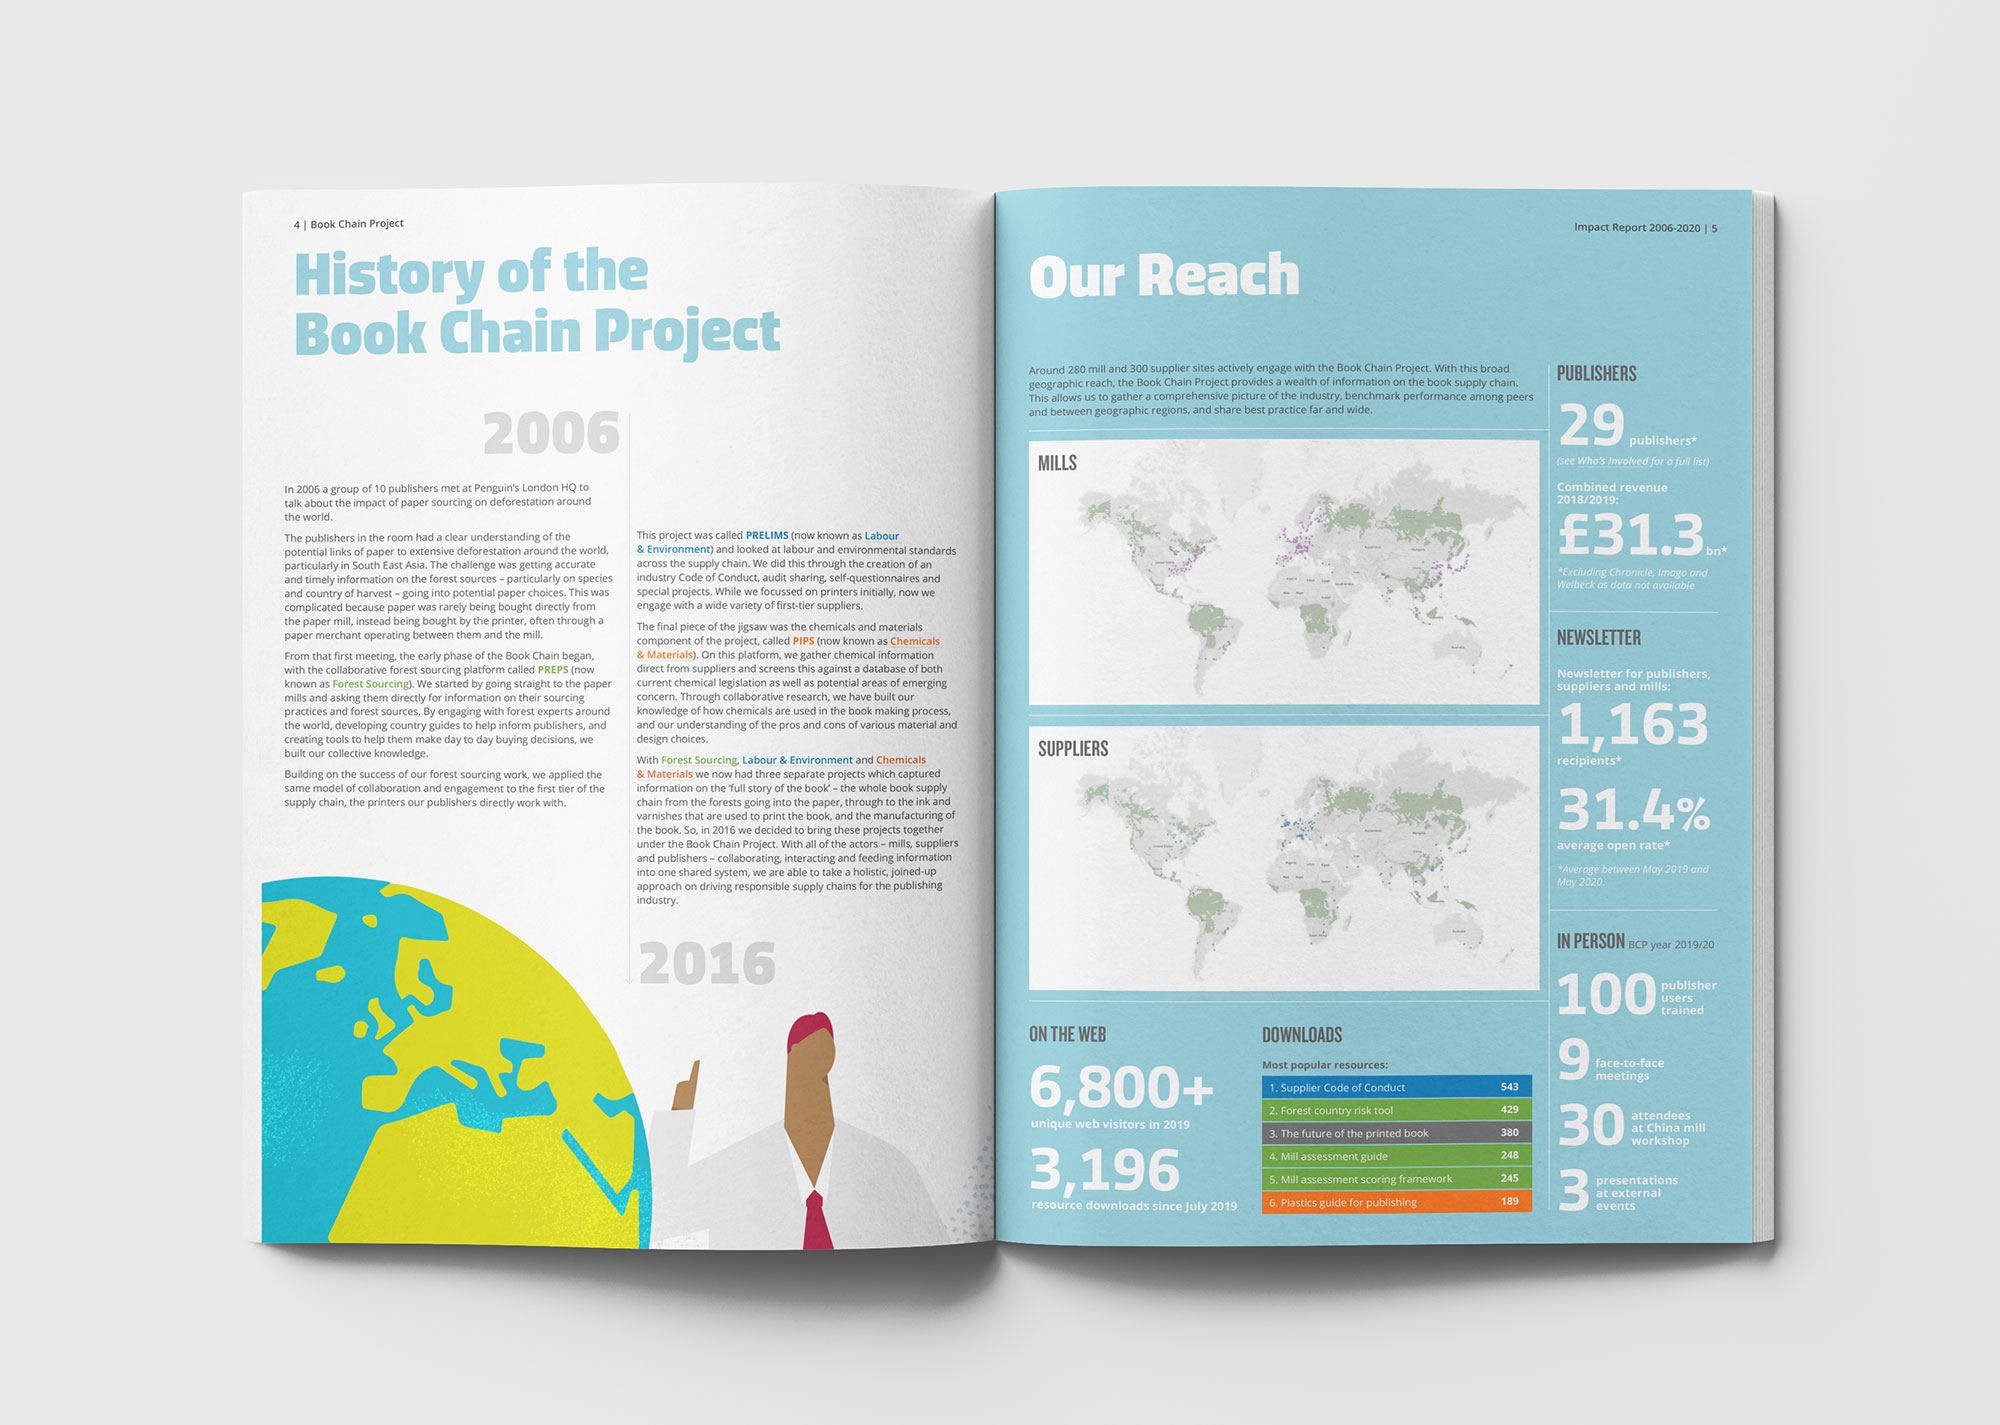 Book Chain Impact Report history and reach